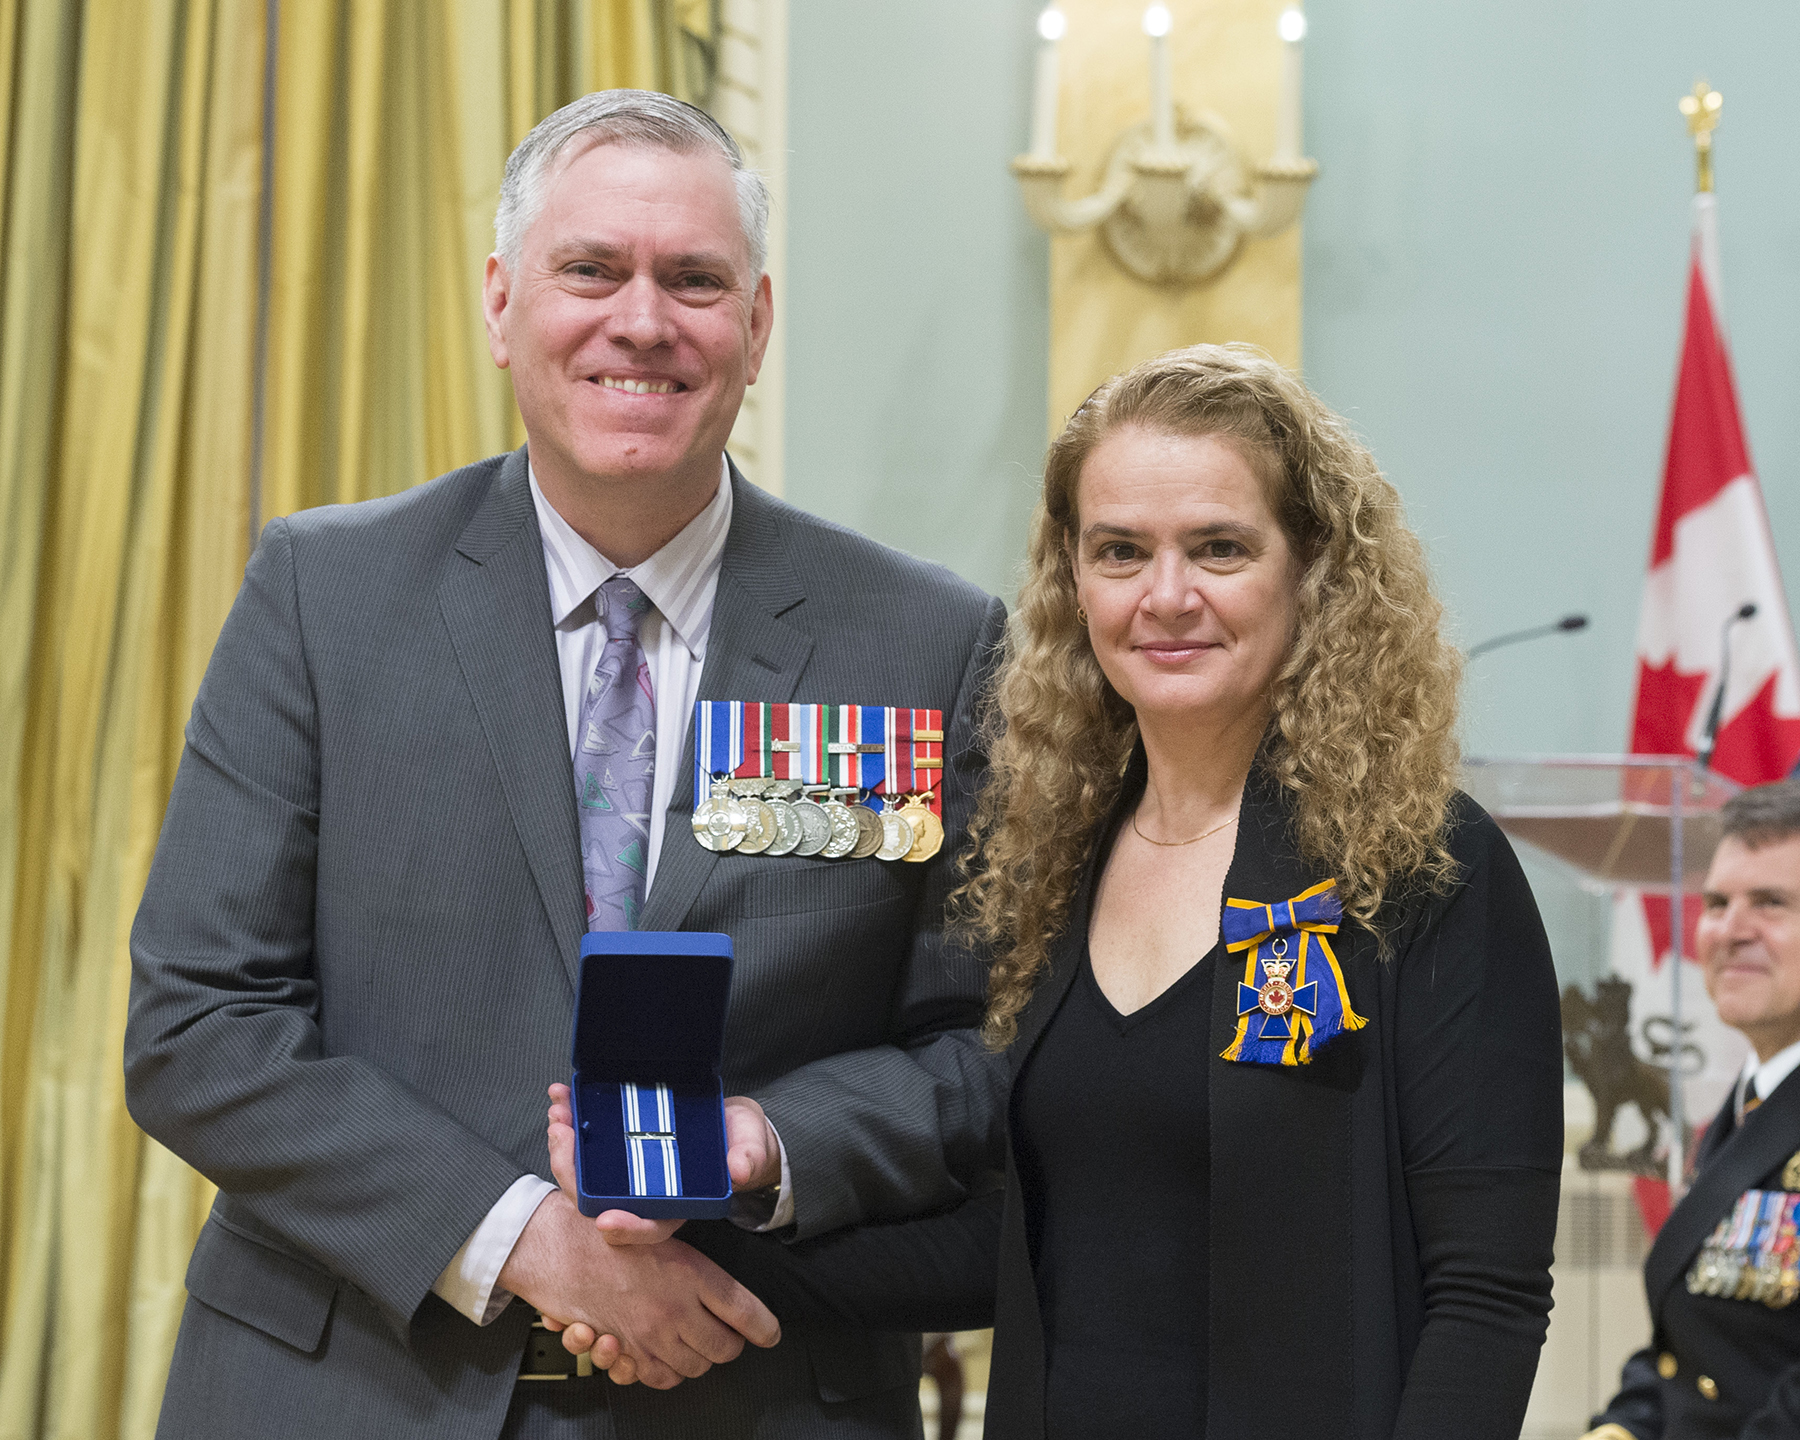 Colonel James Andrew Irvine receives the Meritorious Service Medal (Military Division) from Governor General and Commander-in-Chief of Canada Julie Payette on February 28, 2018. PHOTO: Sergeant Johanie Maheu, OSGG, GG05-2018-0066-017